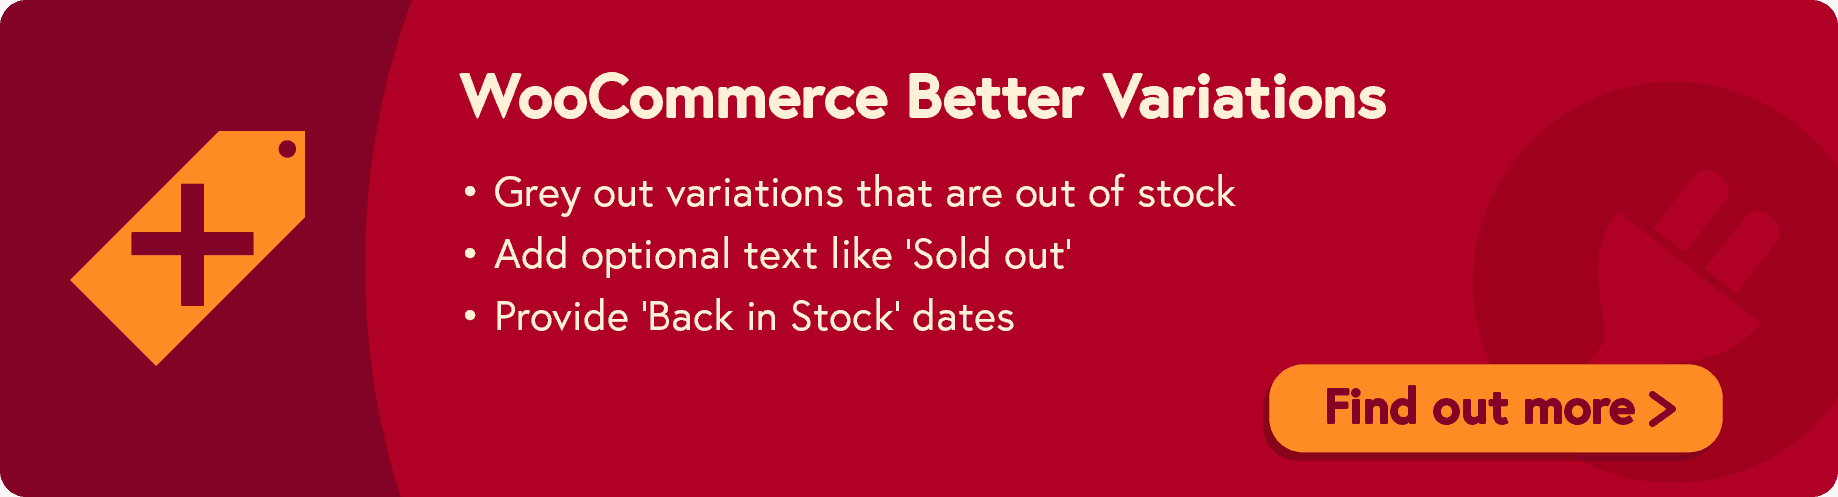 WooCommerce Better Variations